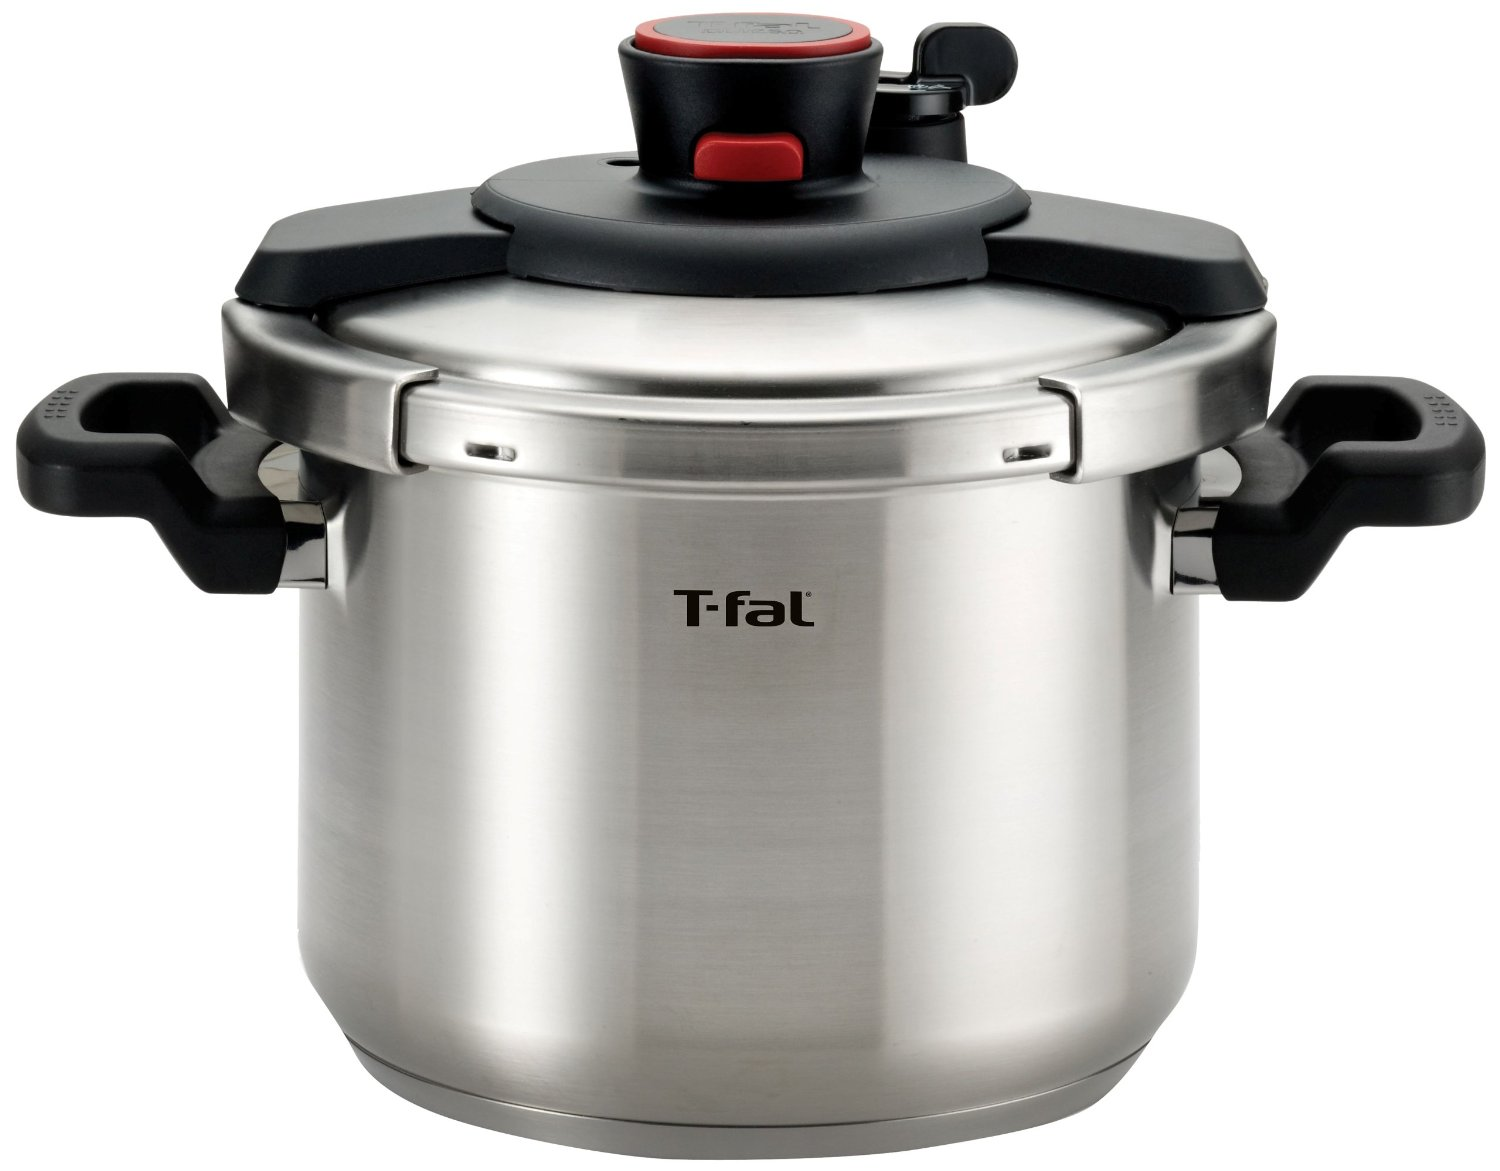 T-fal P45007 Clipso Stainless Steel Pressure Cooker, 6.3-Quart, Silver